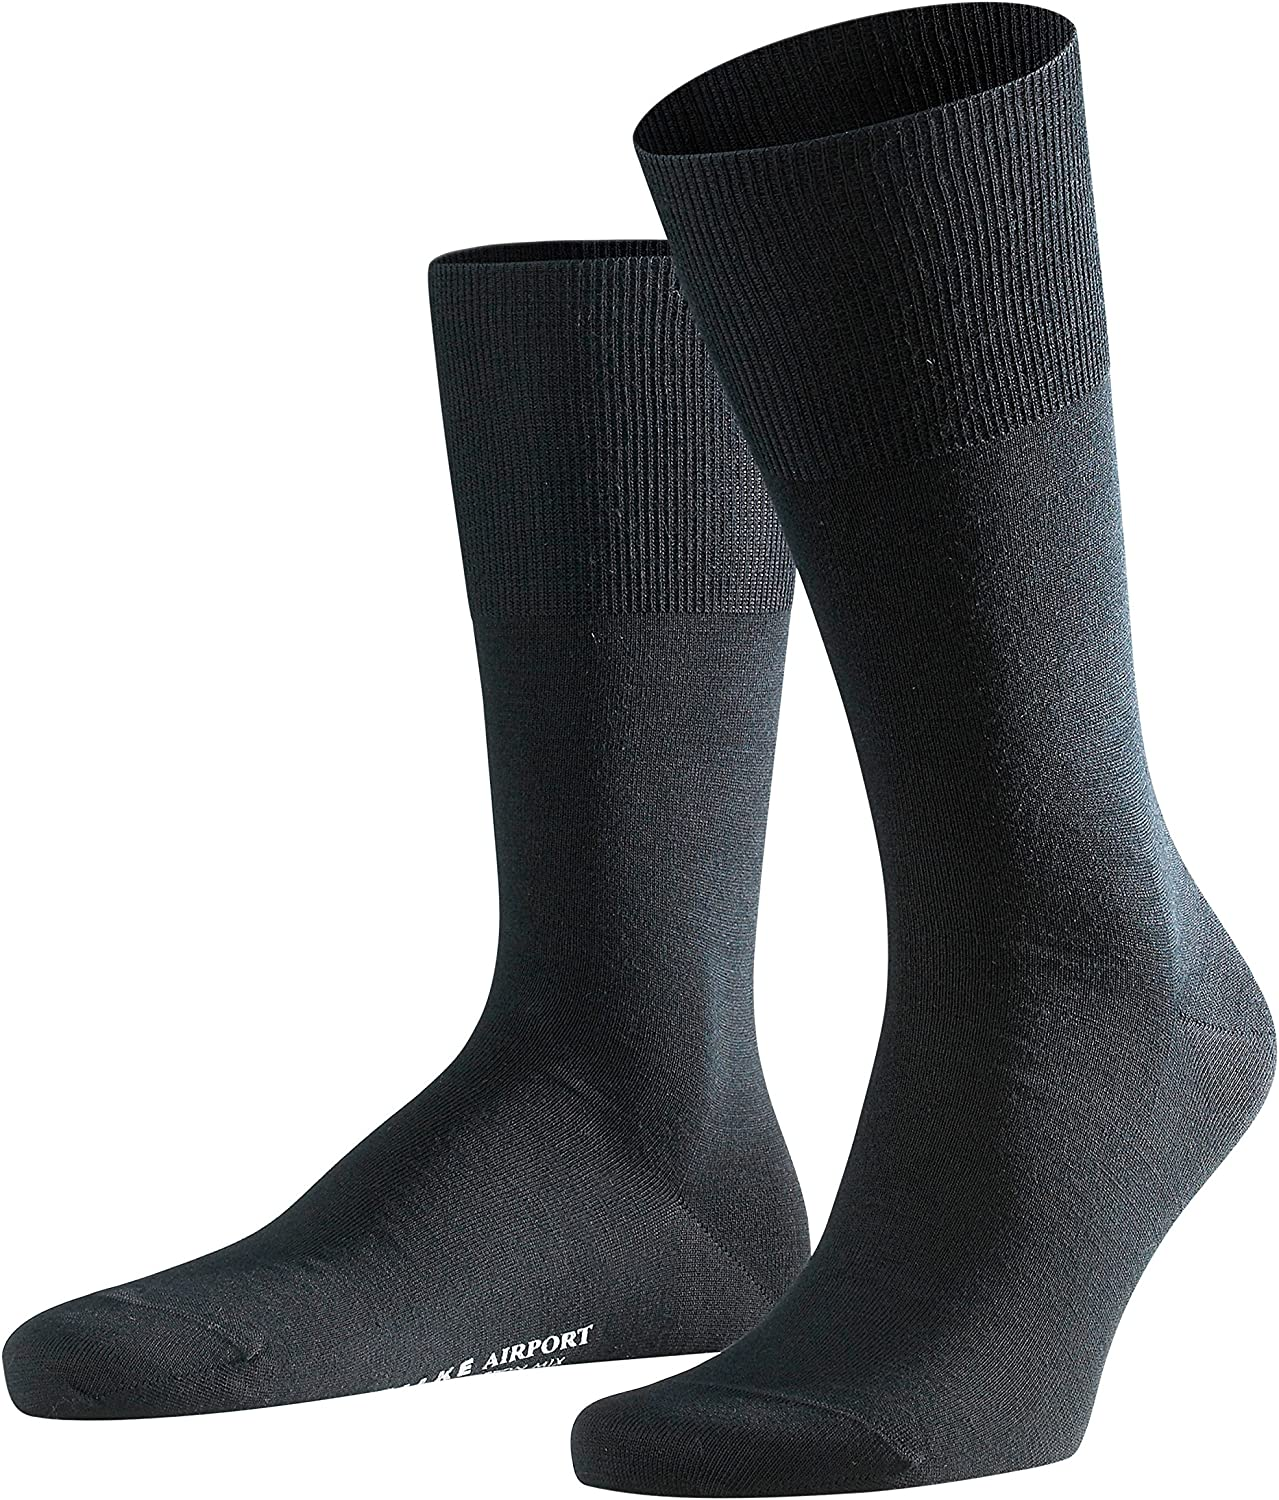 FALKE Mens Airport Dress Socks, Merino Wool Cotton Blend, Over the Calf, for Business and Casual, Black More Colors, 1 Pair